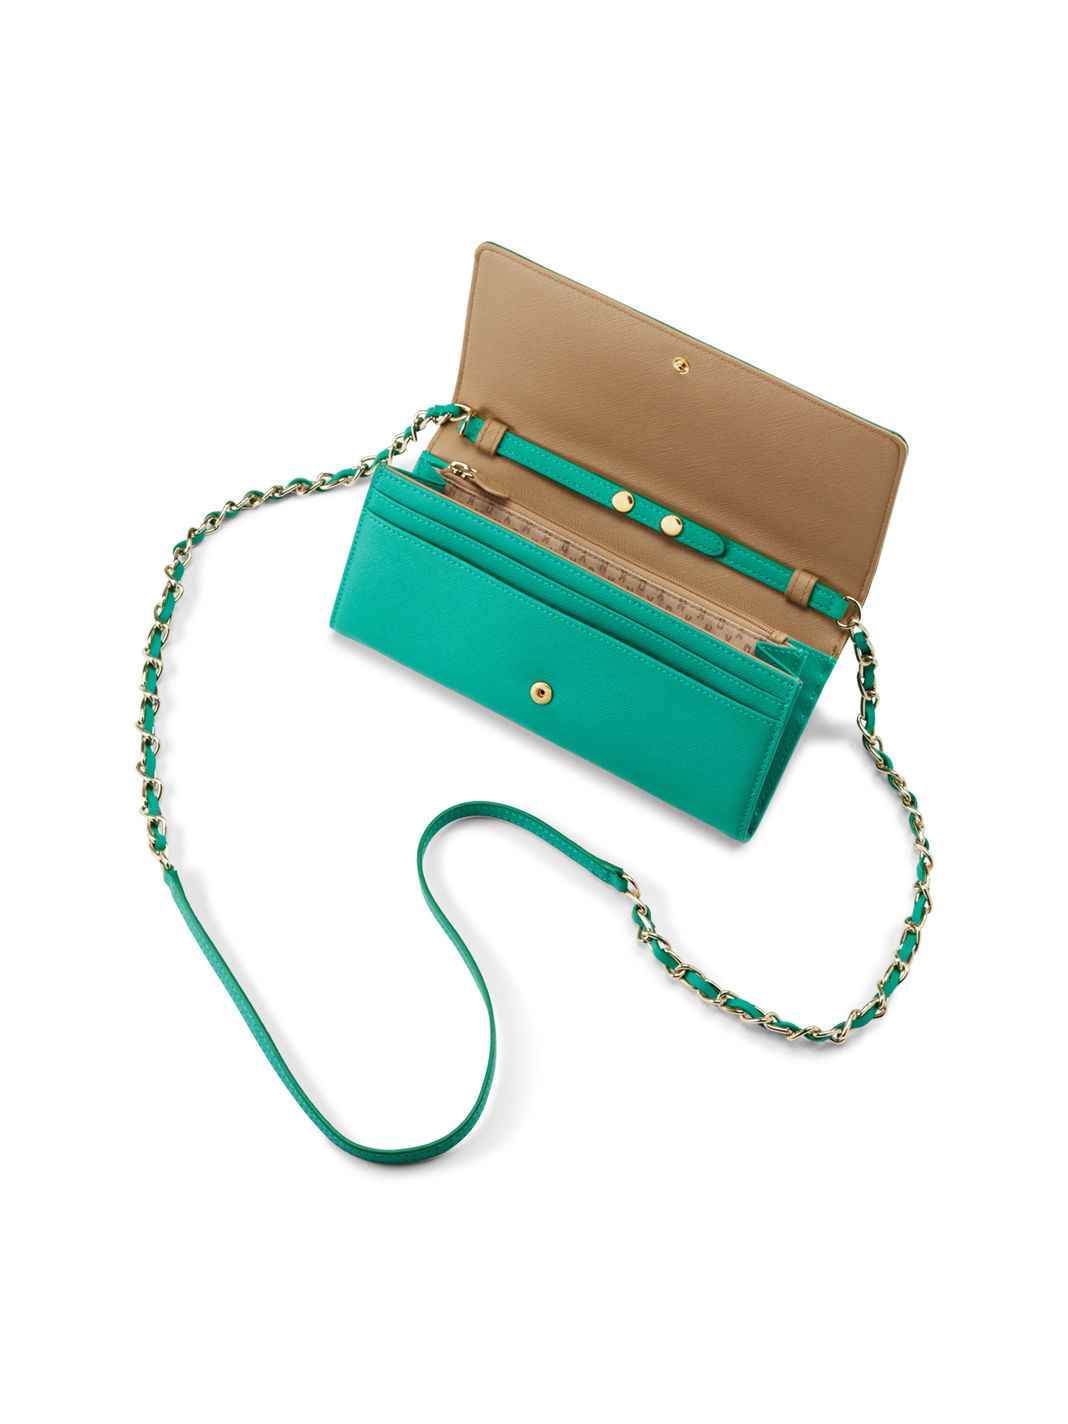 a2a91c405c4f Lyst - DKNY Saffiano Leather Wallet Clutch in Green